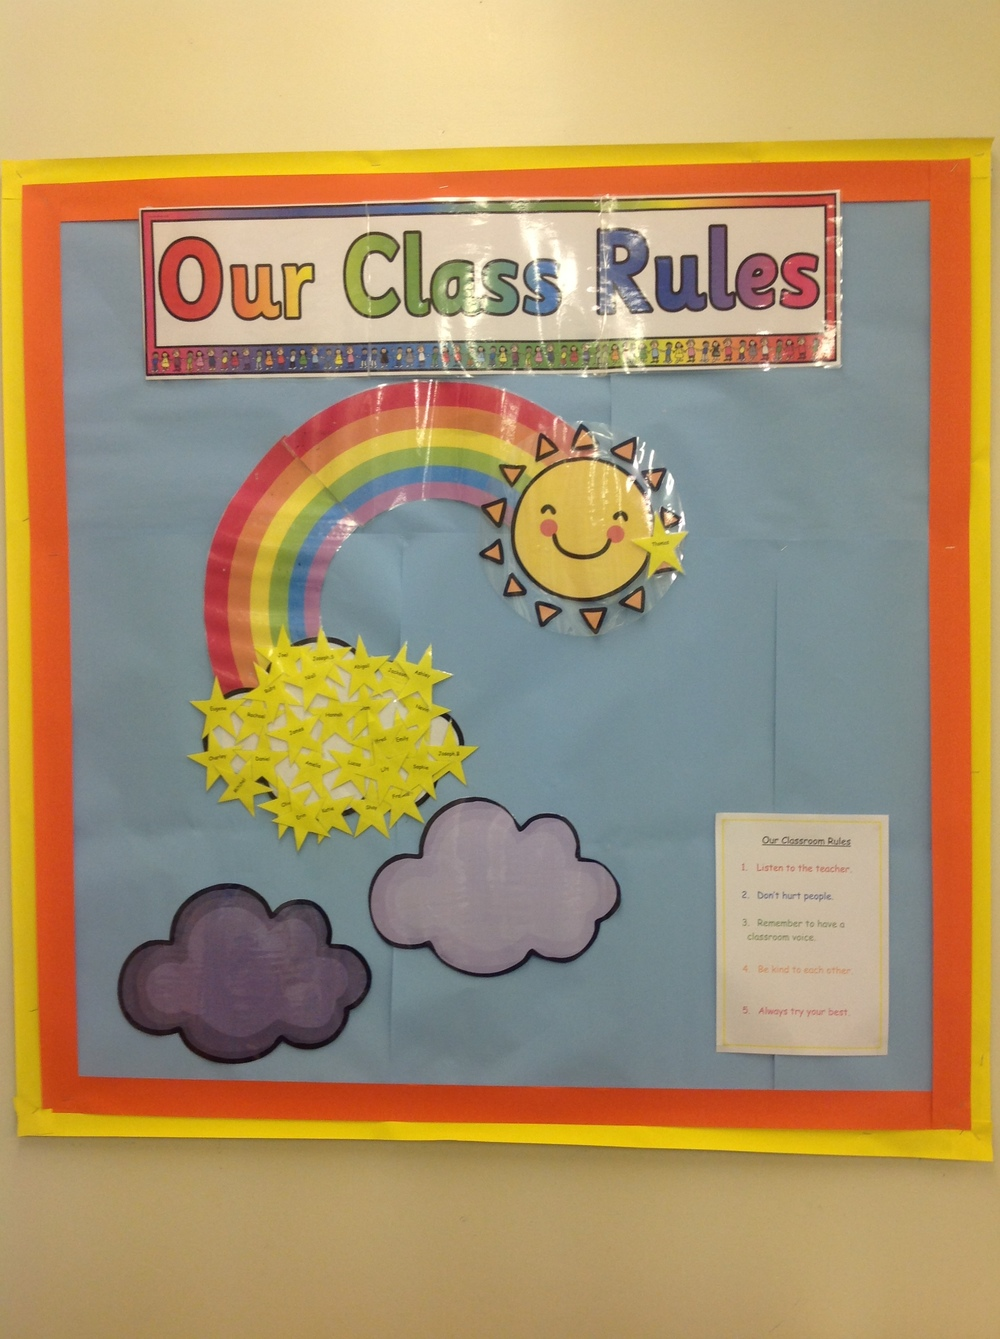 We all agreed our class rules